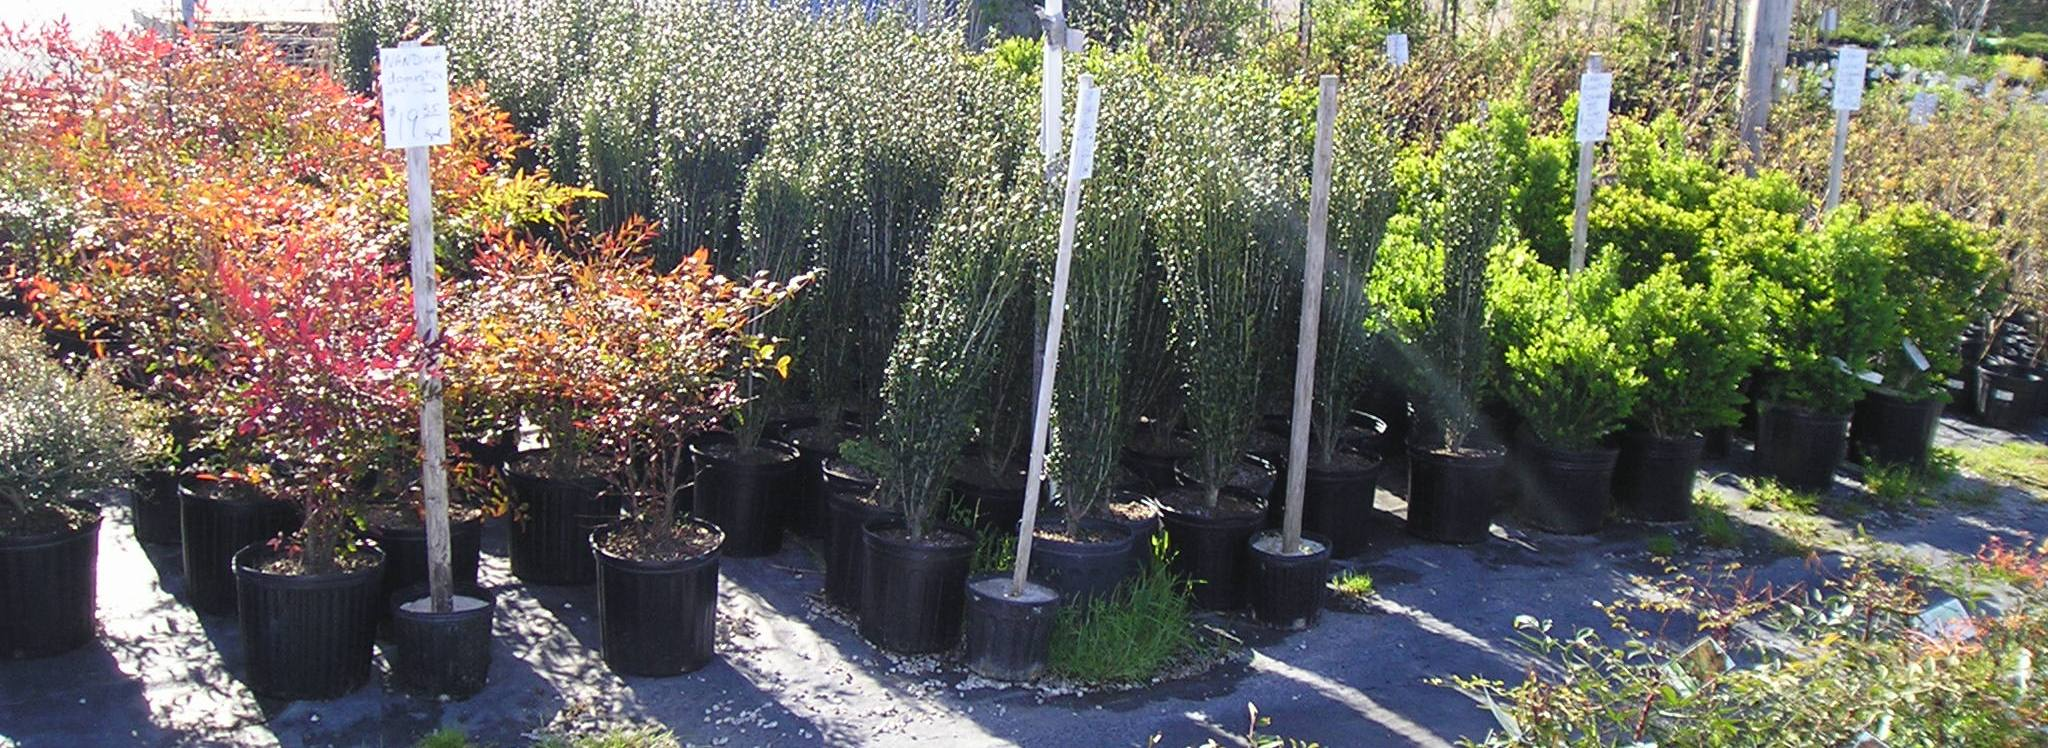 Stringer Nursery Evergreen Shrubs